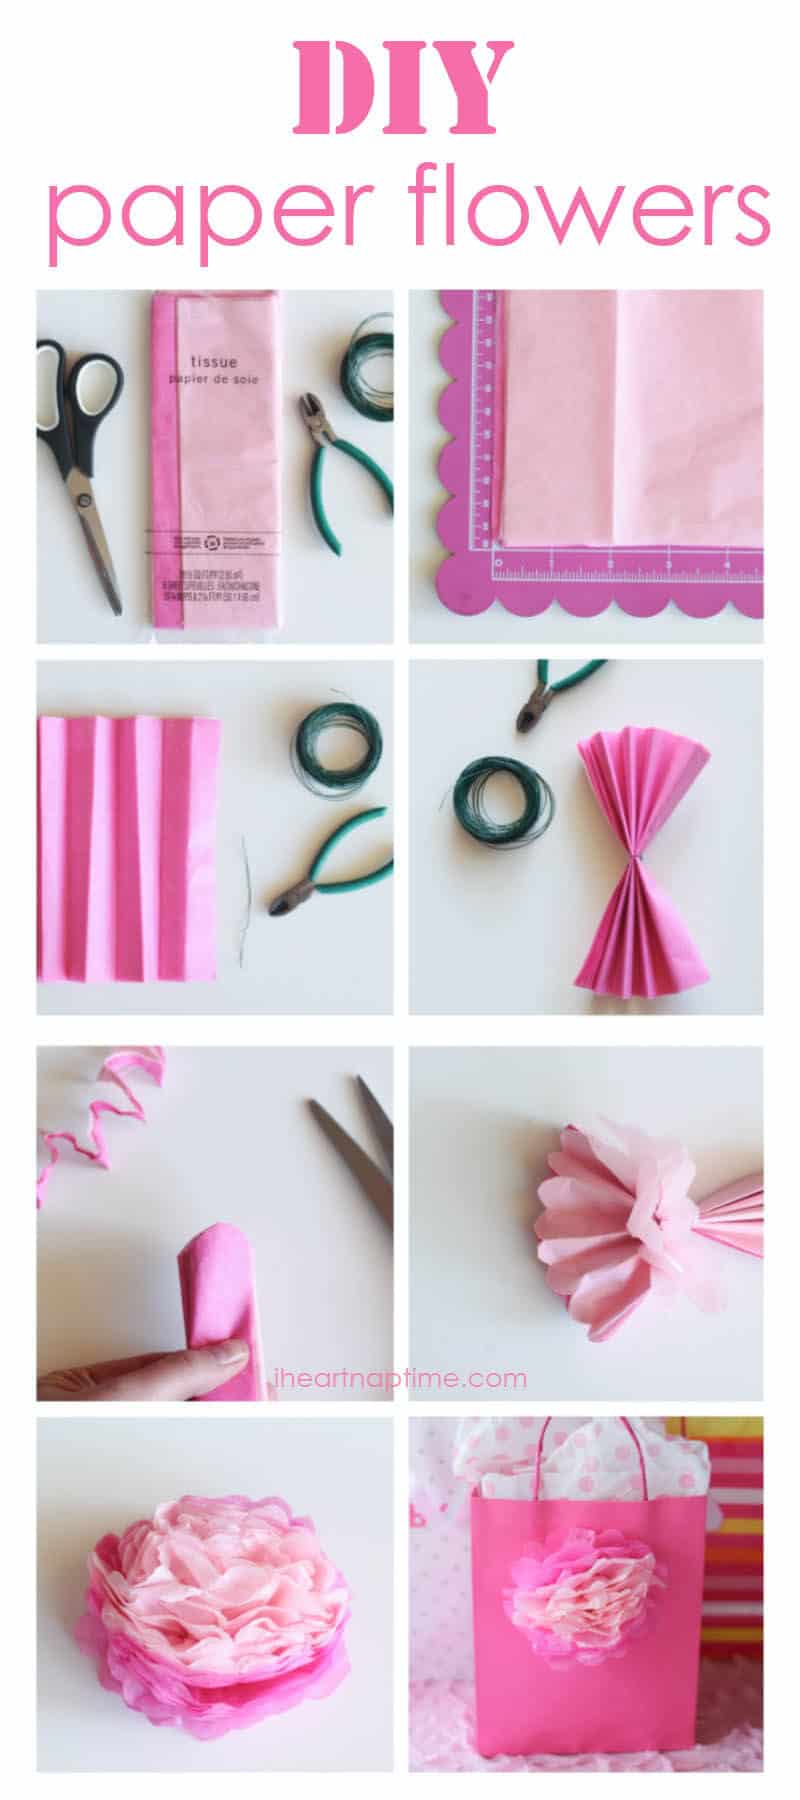 How to make tissue paper flowers i heart nap time how to make tissue paper flowers mightylinksfo Images